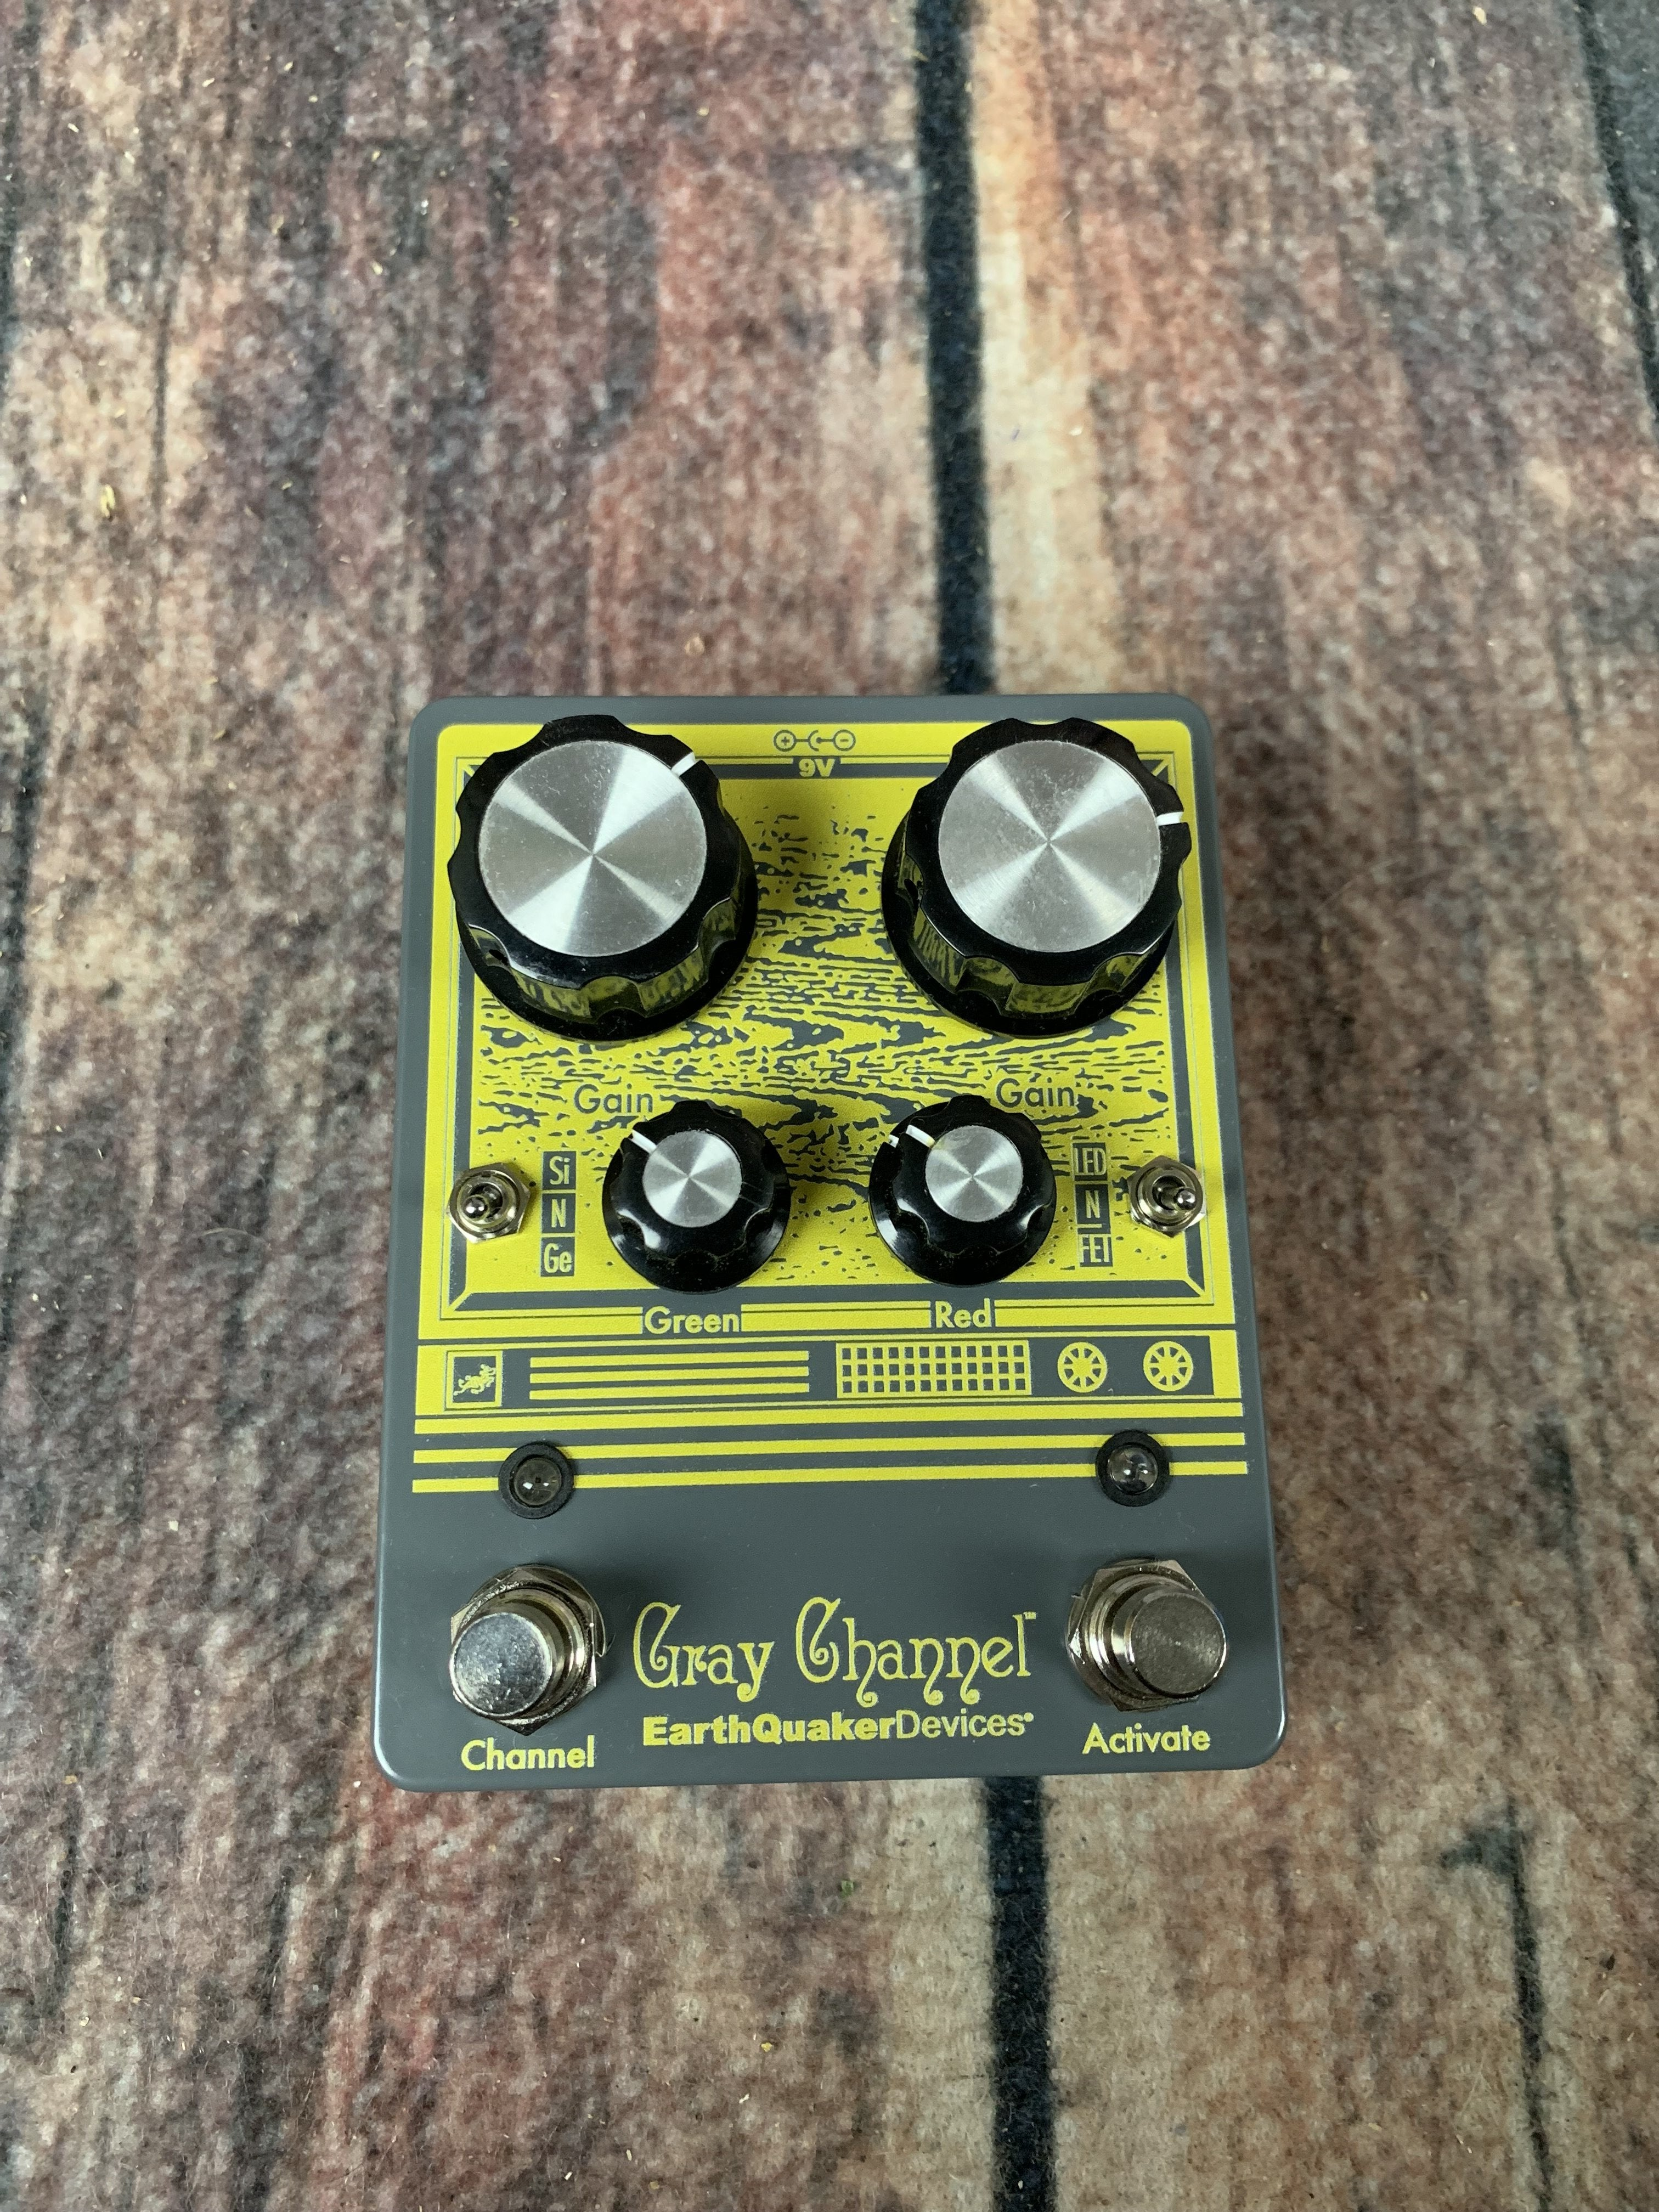 EarthQuaker Devices Gray Channel Dynamic Dirt Doubler Overdrive Guitar Effects Pedal